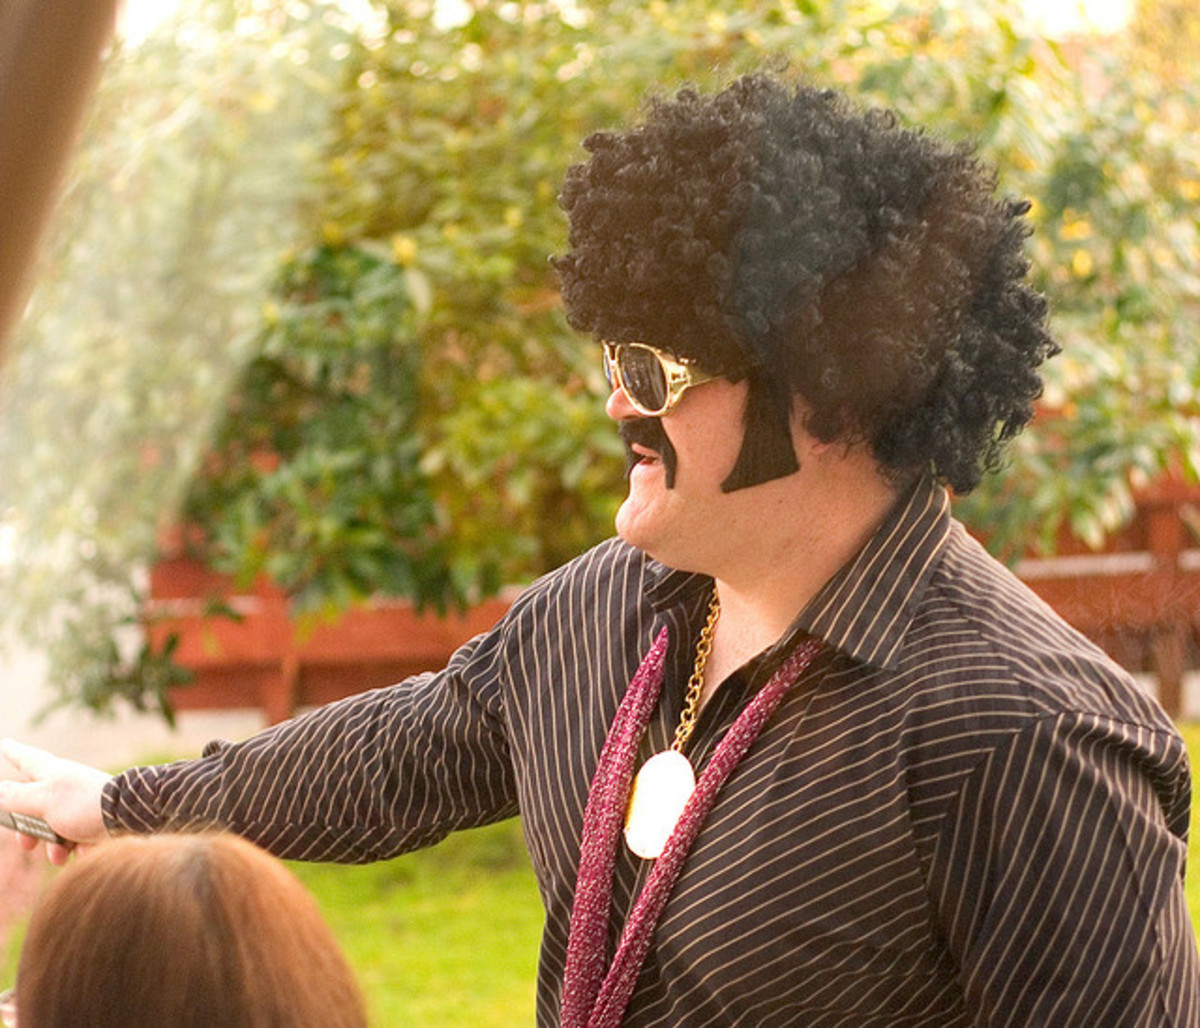 Afro wig with sunglasses are perfect easy disco accessories for men.